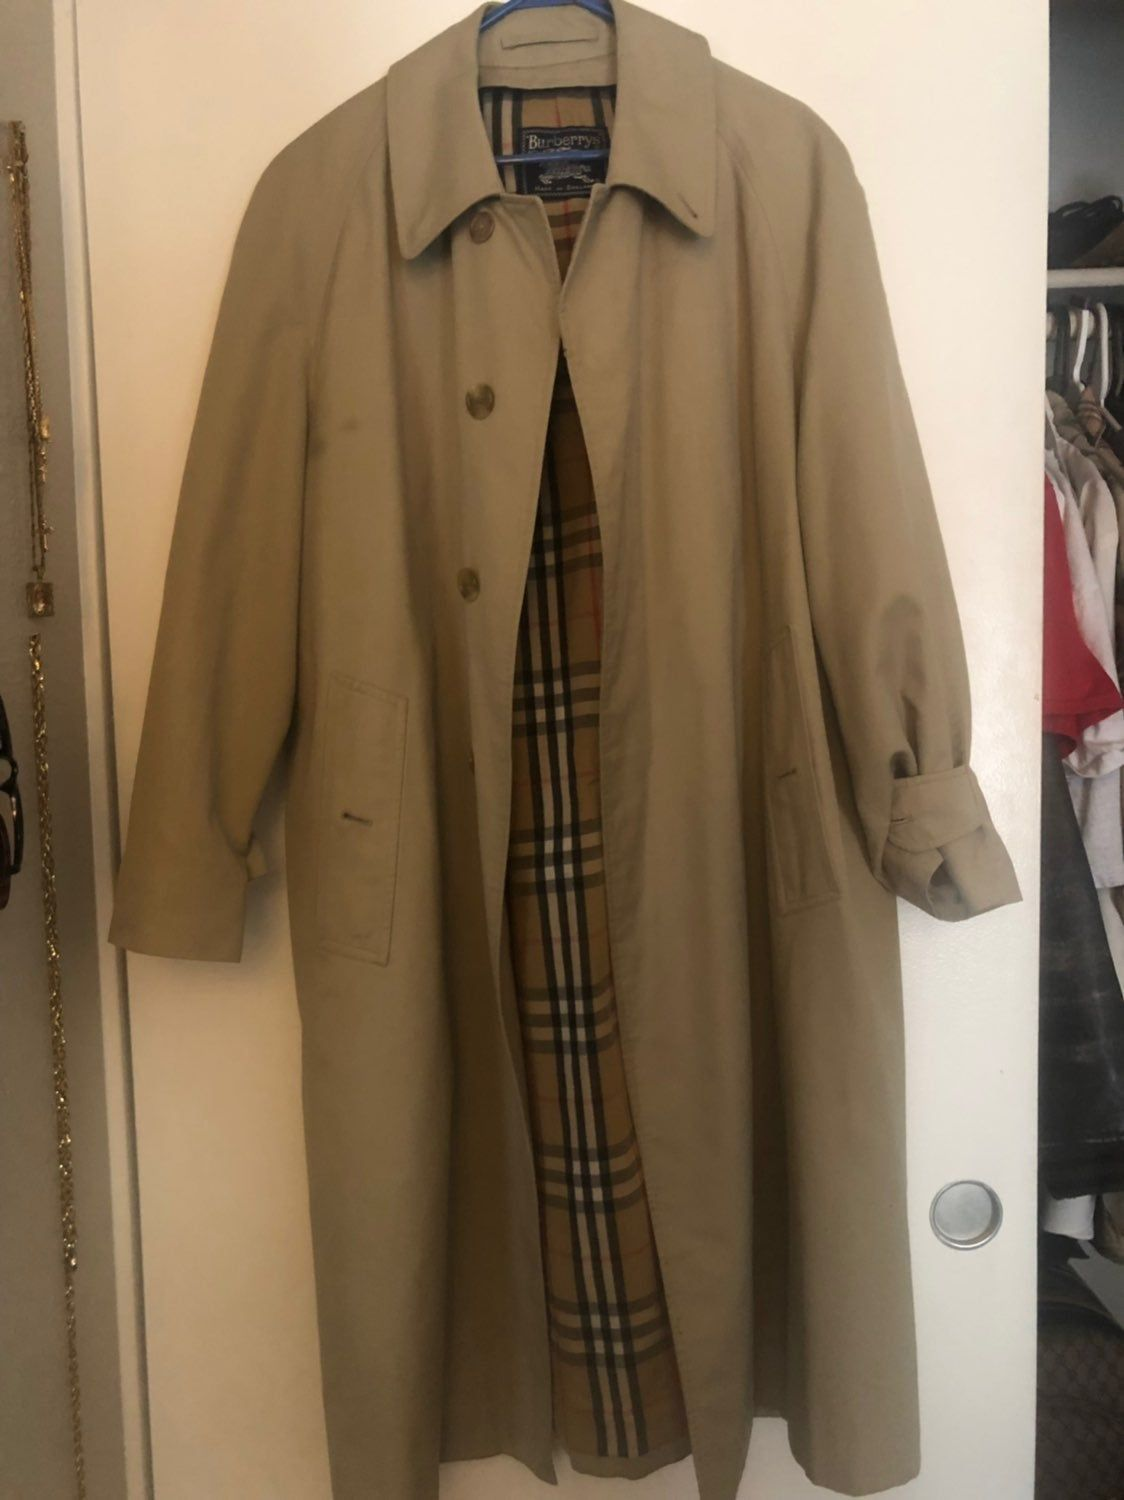 Authentic Burberry S Trench Coat Missing The Inner Lining And Has A Few Flaws Nova Check Print Unisex Coat Comes With A Fre Trench Coat Coat Burberry Trench